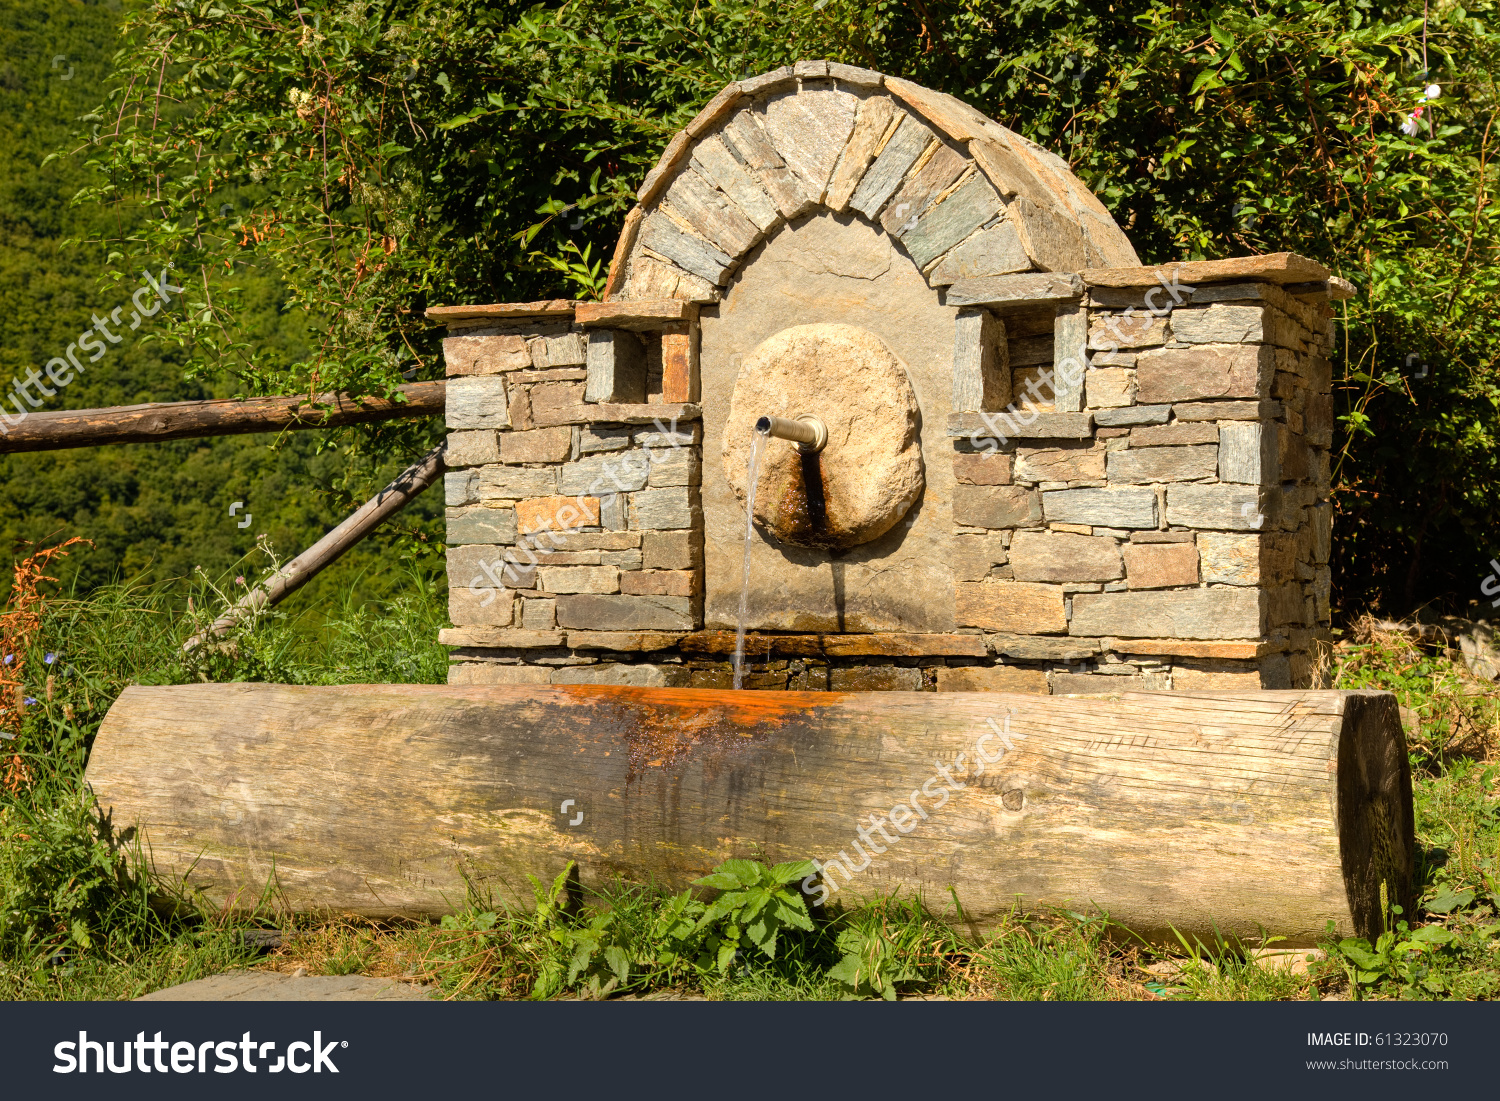 Ornate Water Fountain In The Old Village Of Kovachevitsa, Bulgaria.